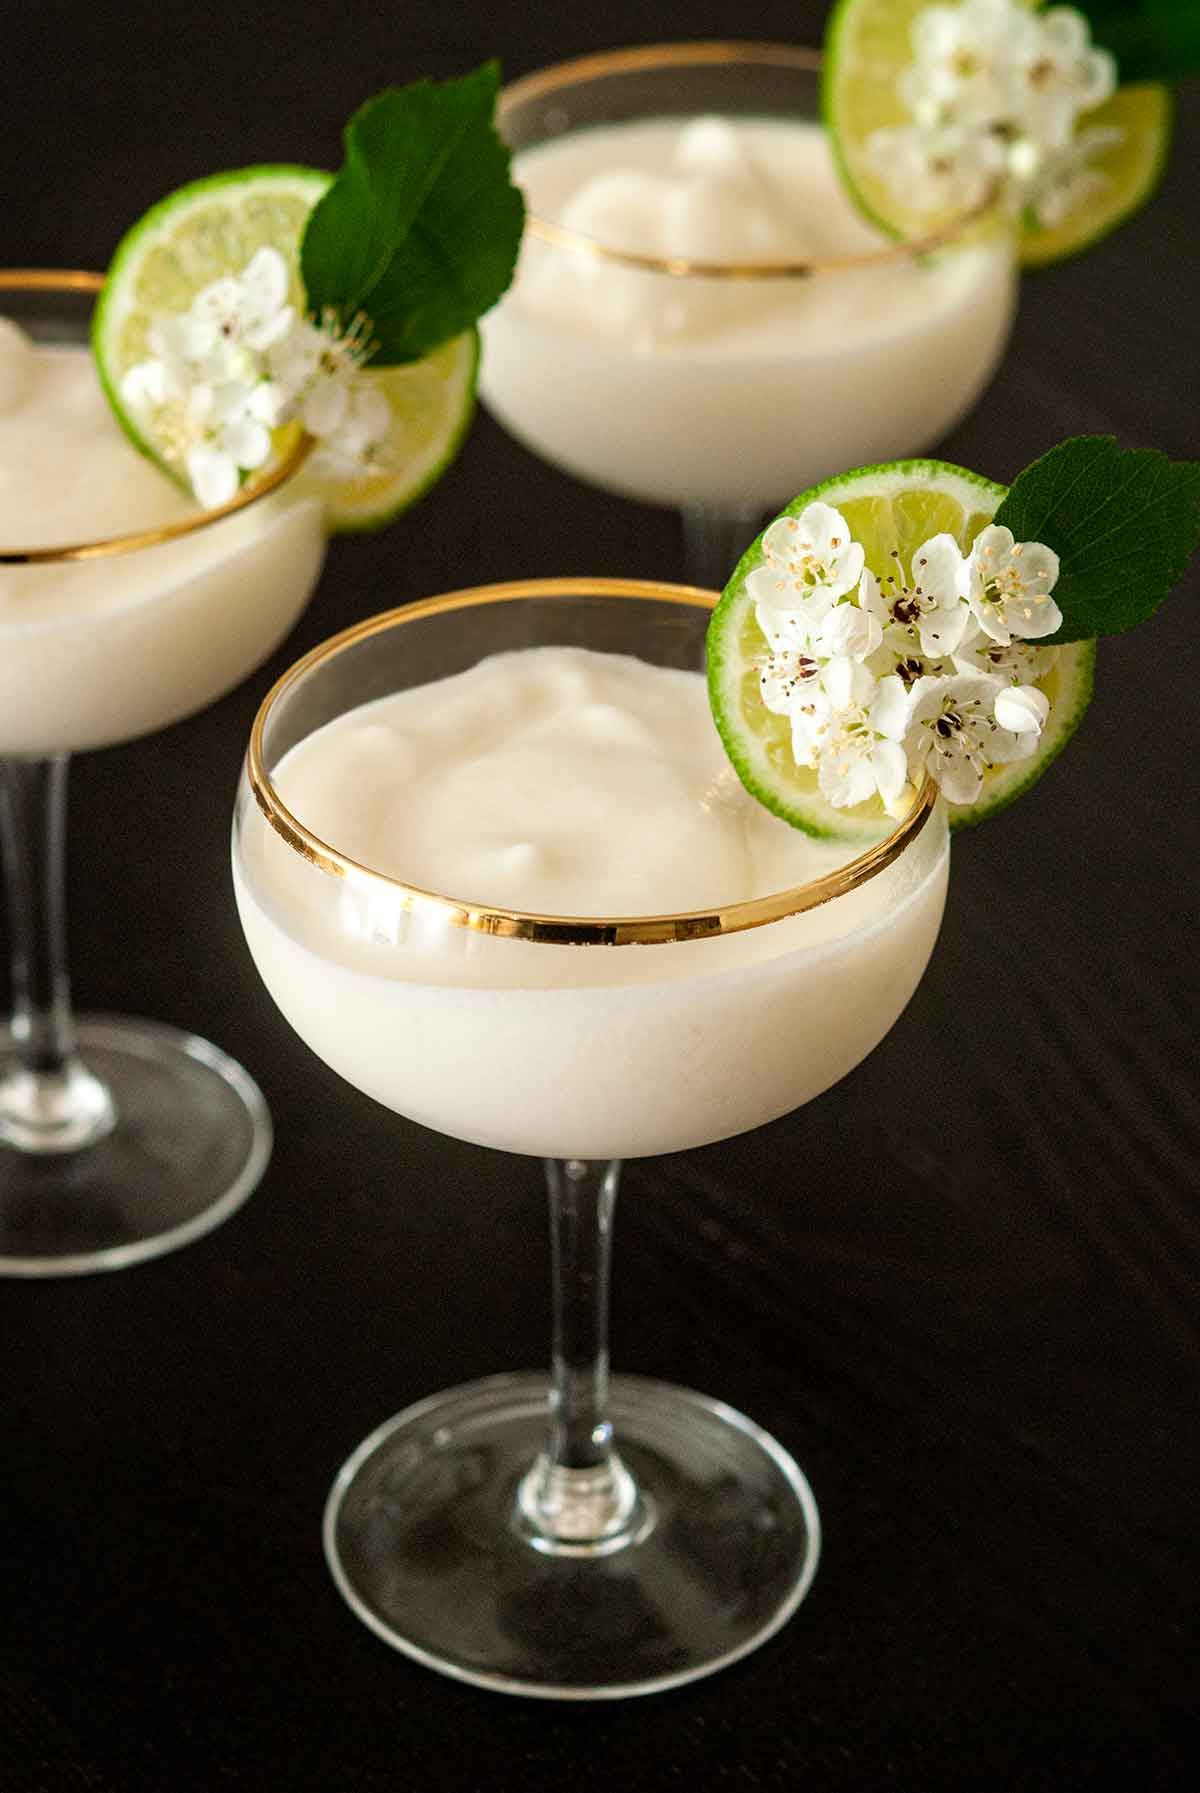 3 piña coladas in coup glasses, garnished with a lime and flowers on a table.